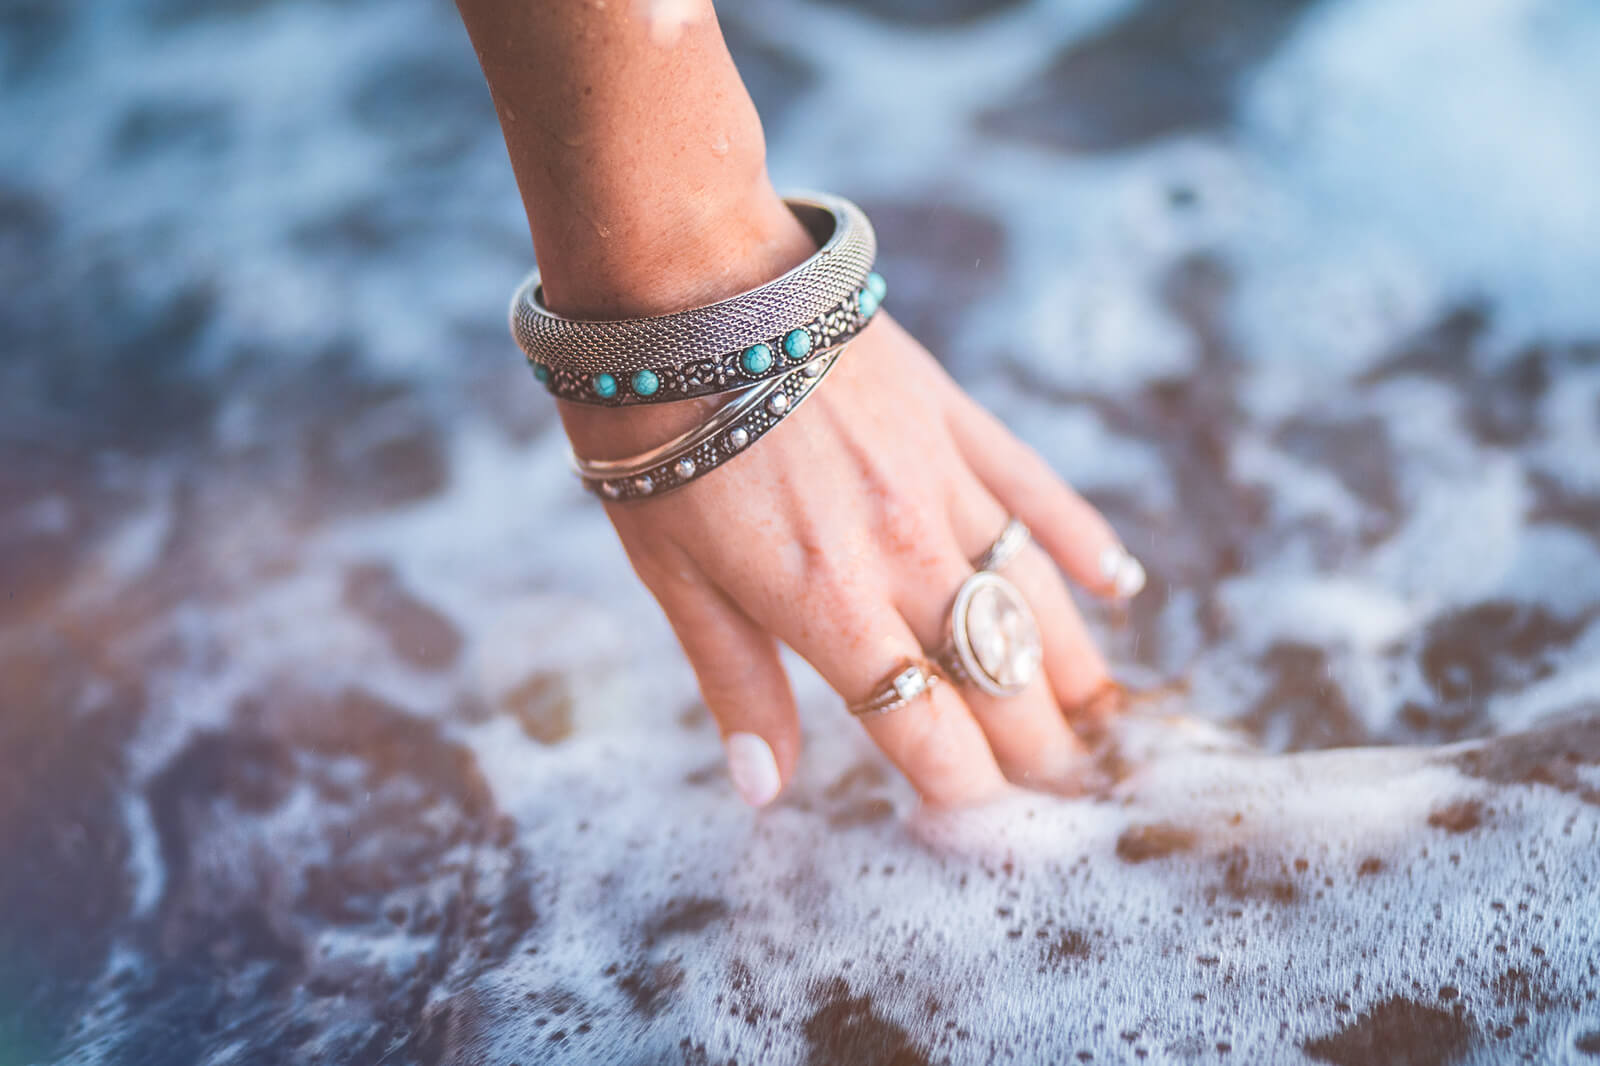 Sterling Silver Jewelry: What to Know Before You Buy   LoveToKnow